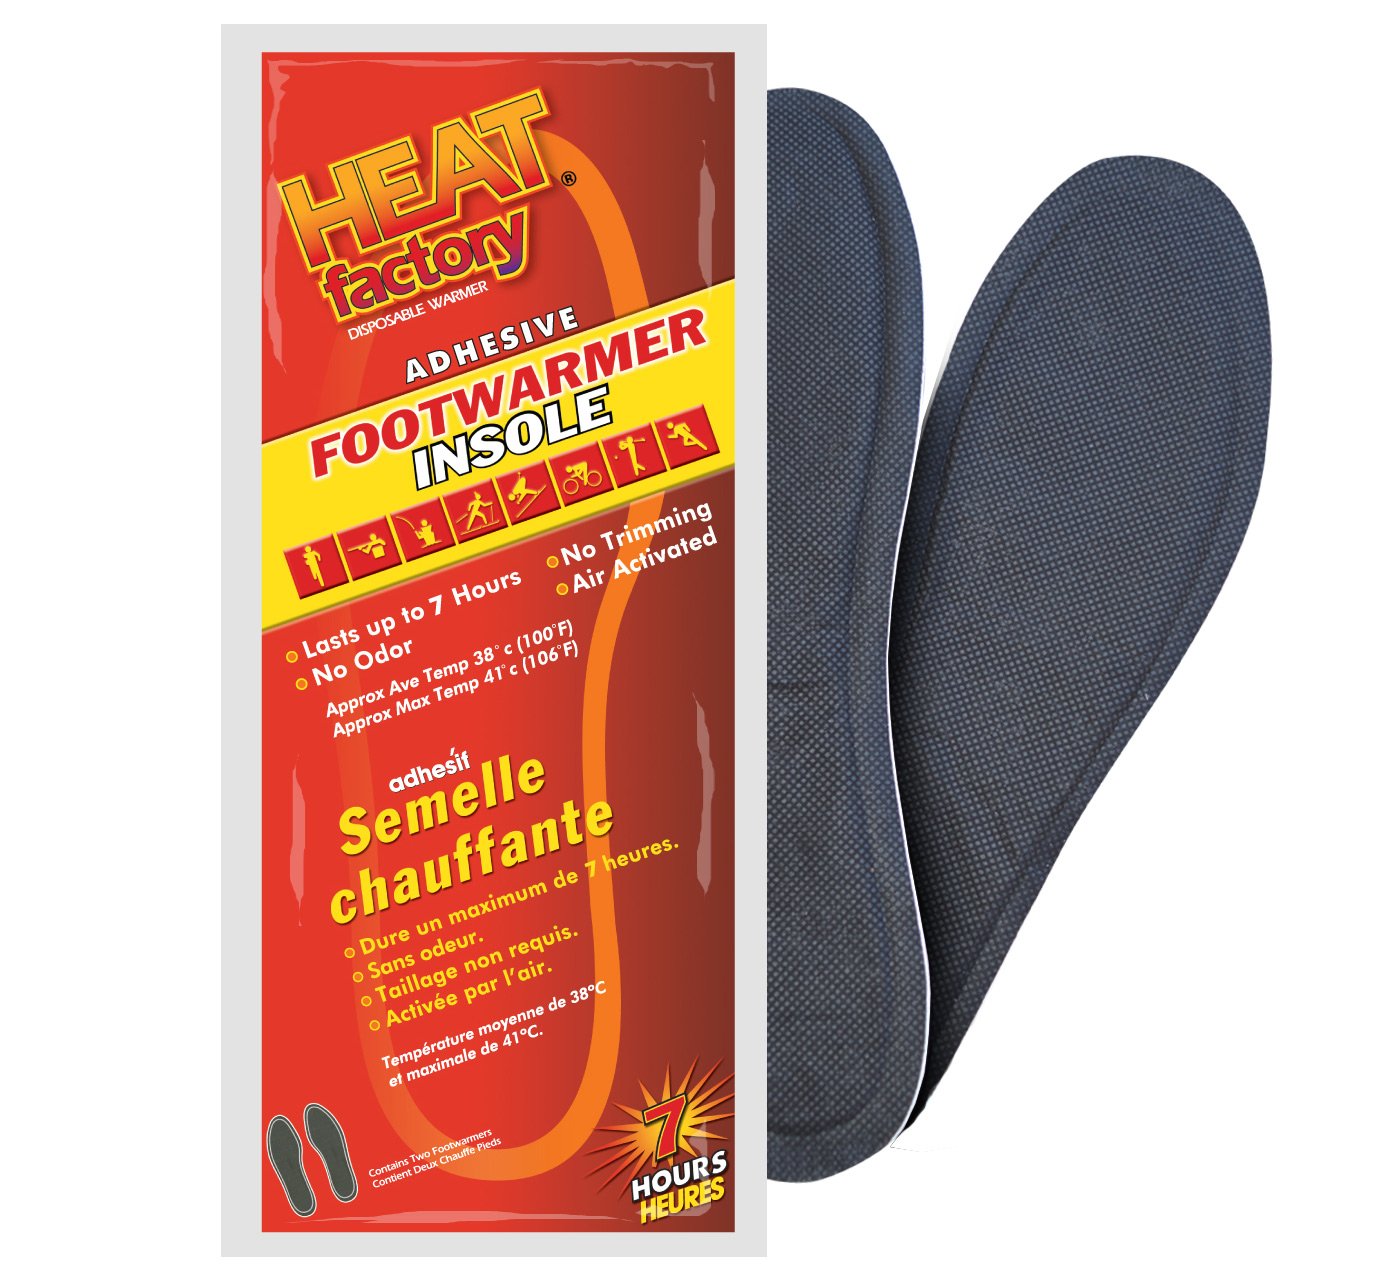 Heat Factory Footwarmer Insole